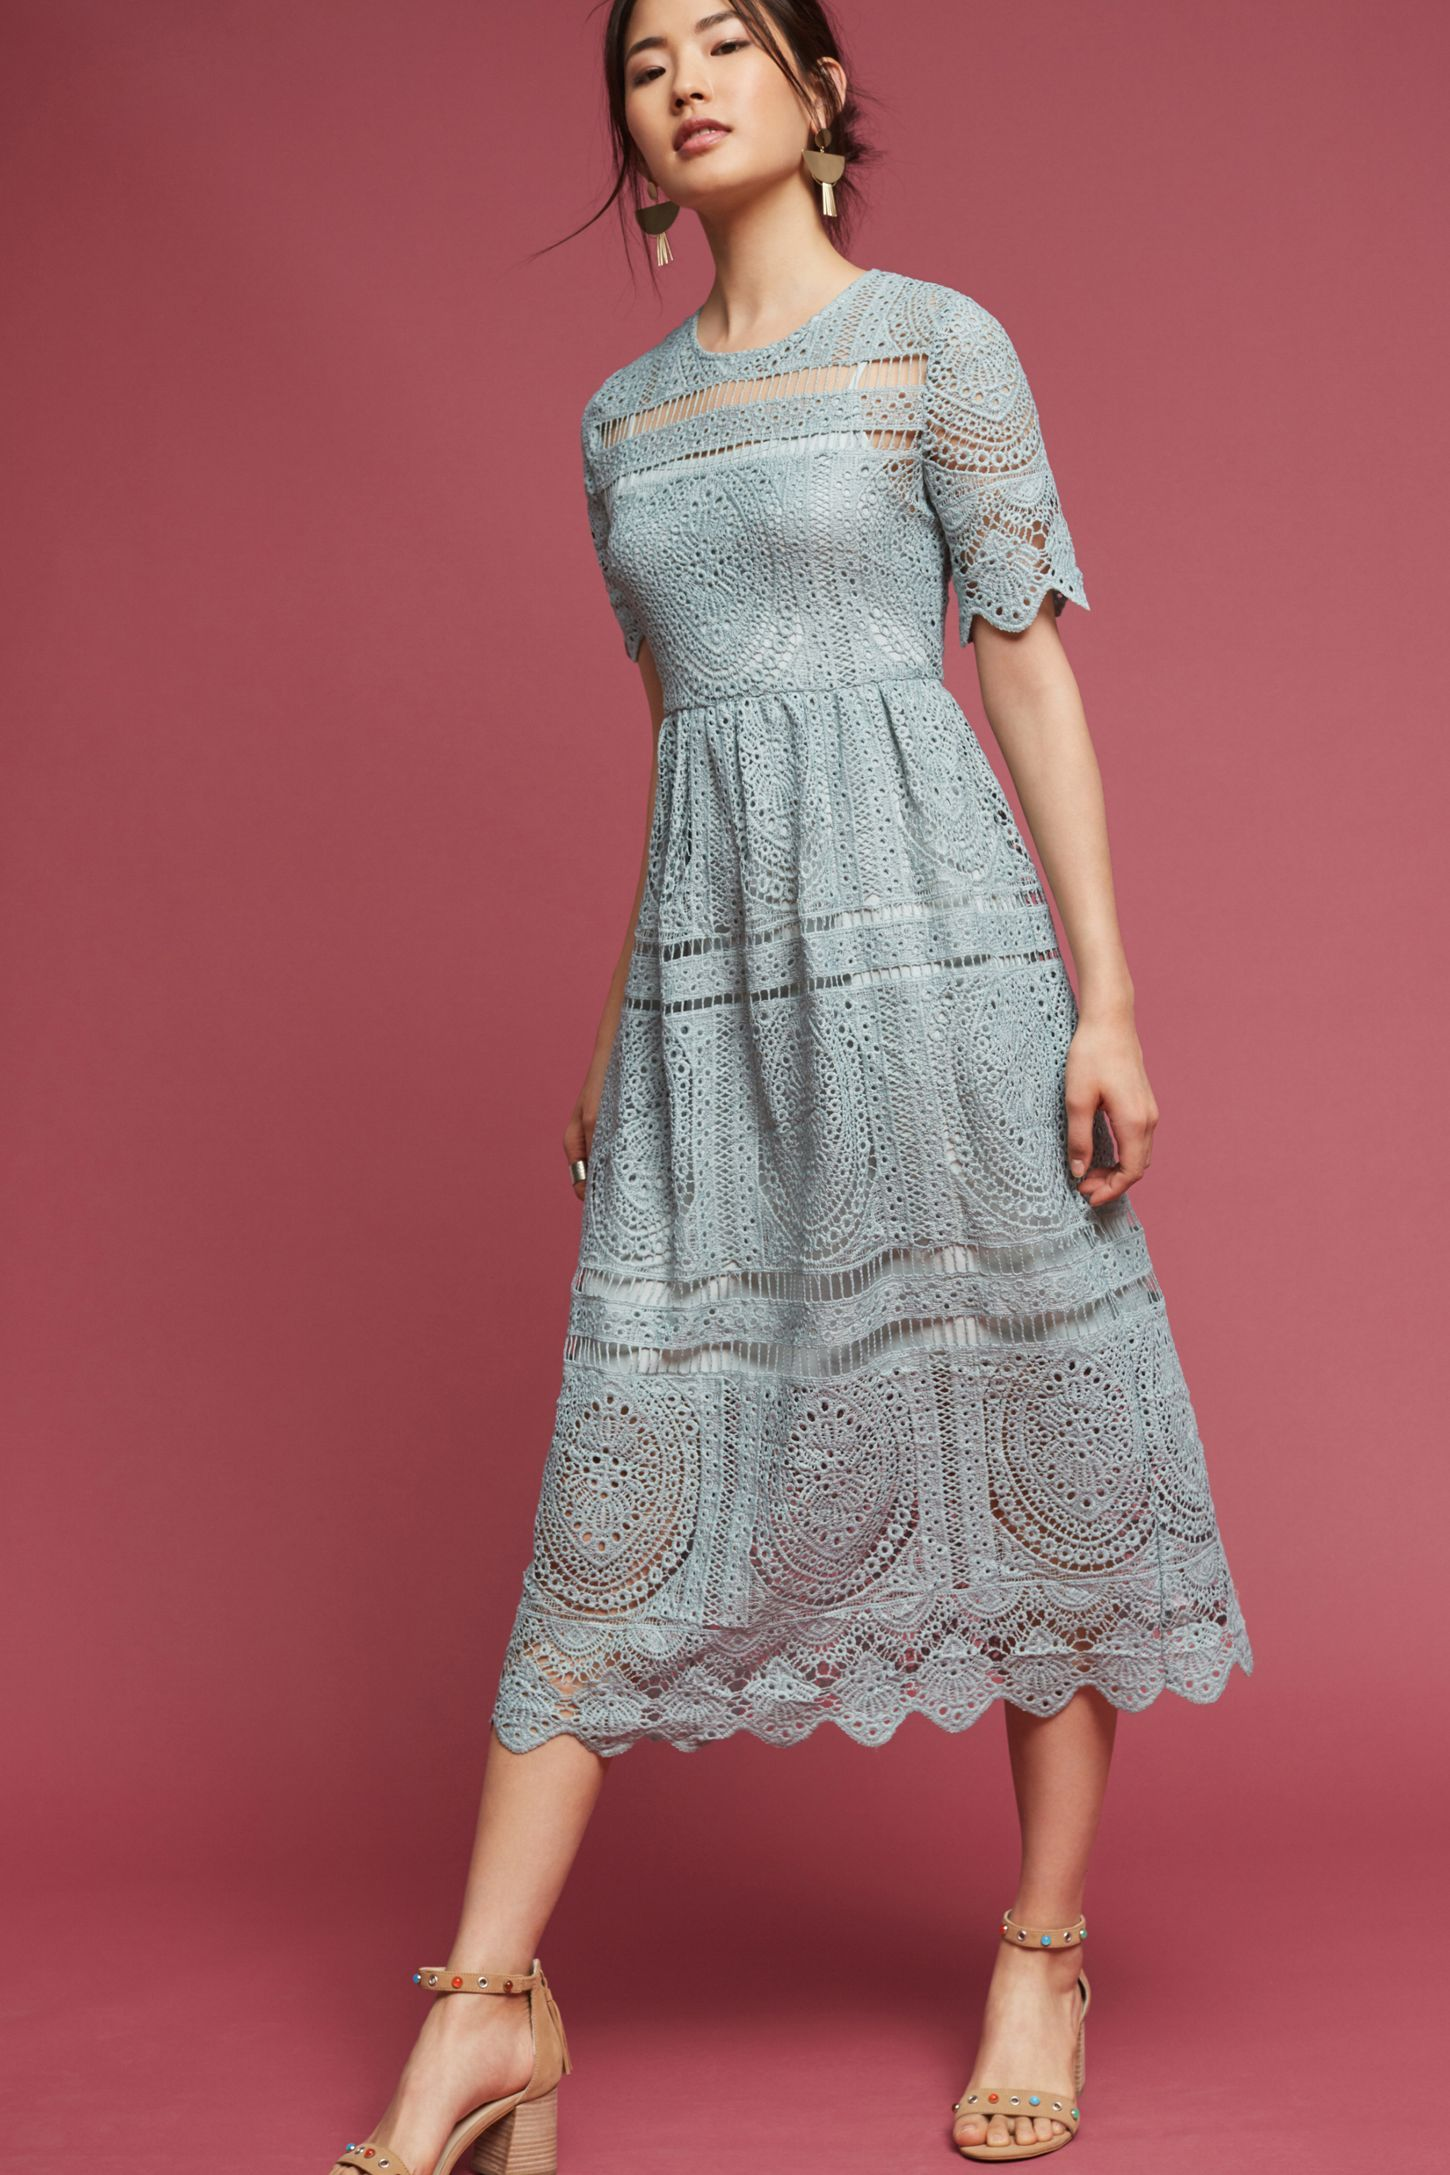 8a190f6adbd1 Shop the Mint Lace Midi Dress and more Anthropologie at Anthropologie  today. Read customer reviews, discover product details and more.